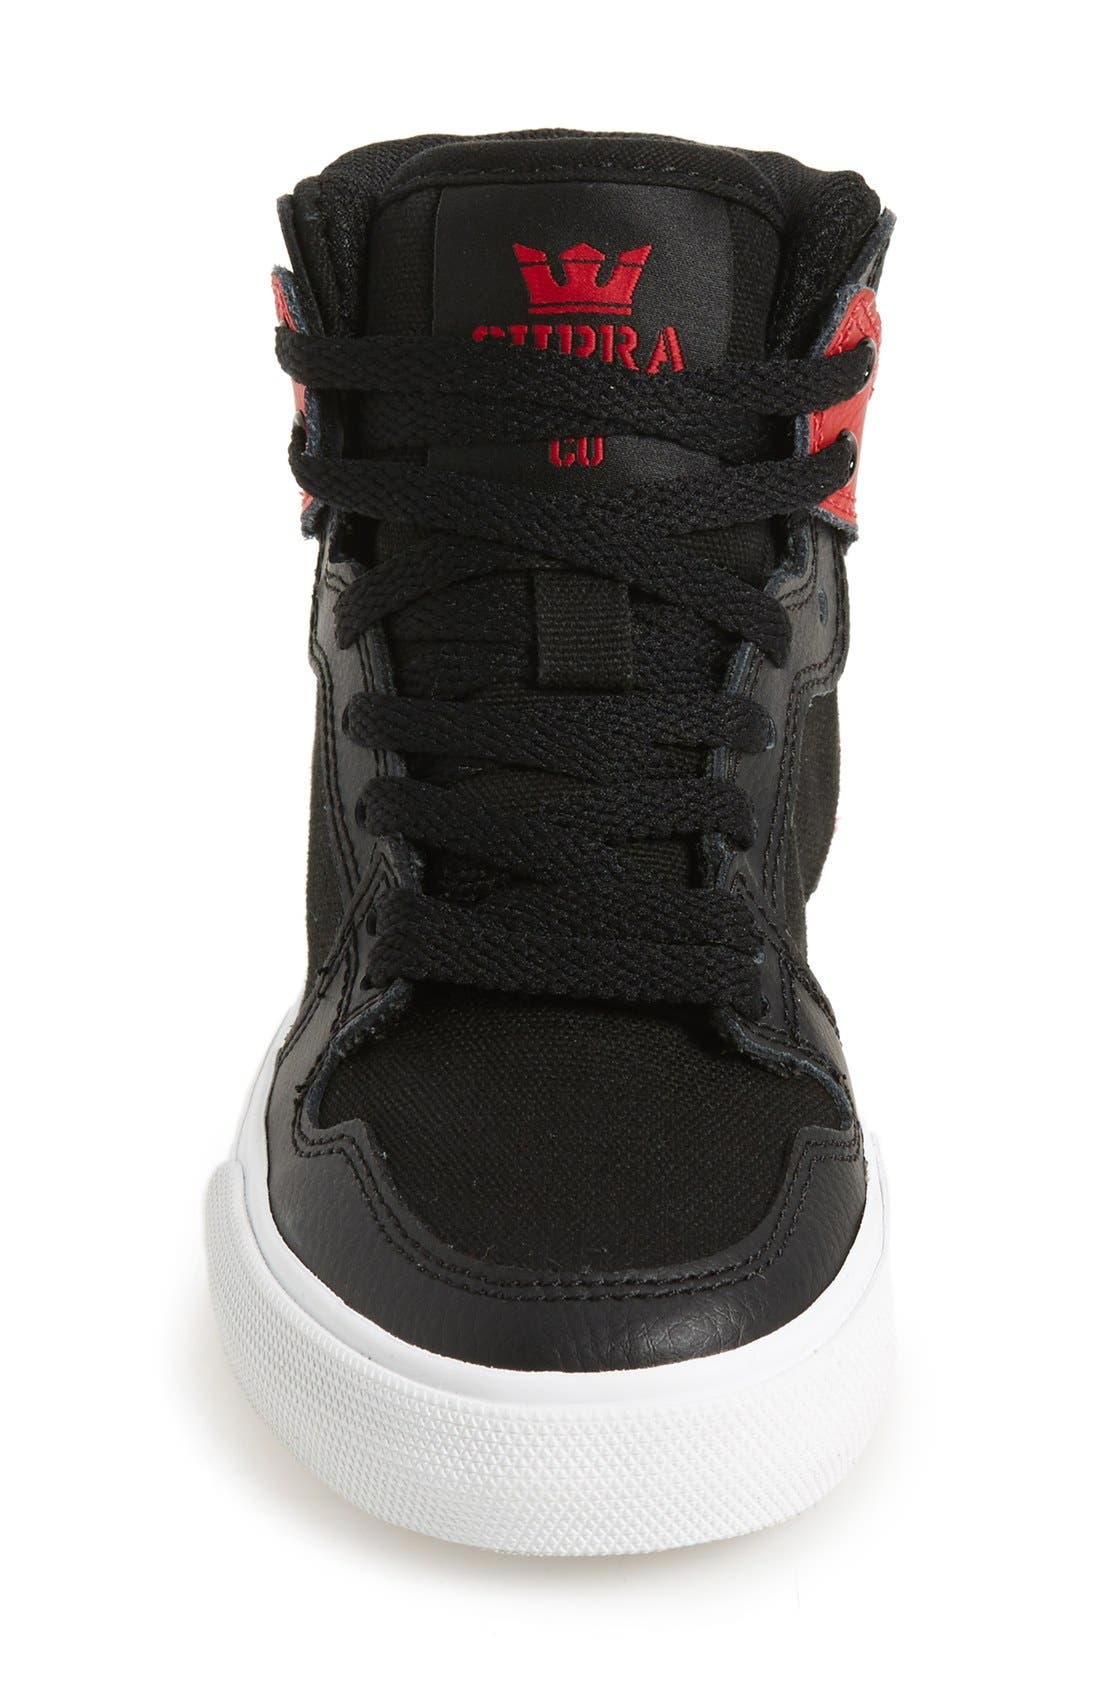 'Vaider' High Top Sneaker,                             Alternate thumbnail 3, color,                             001